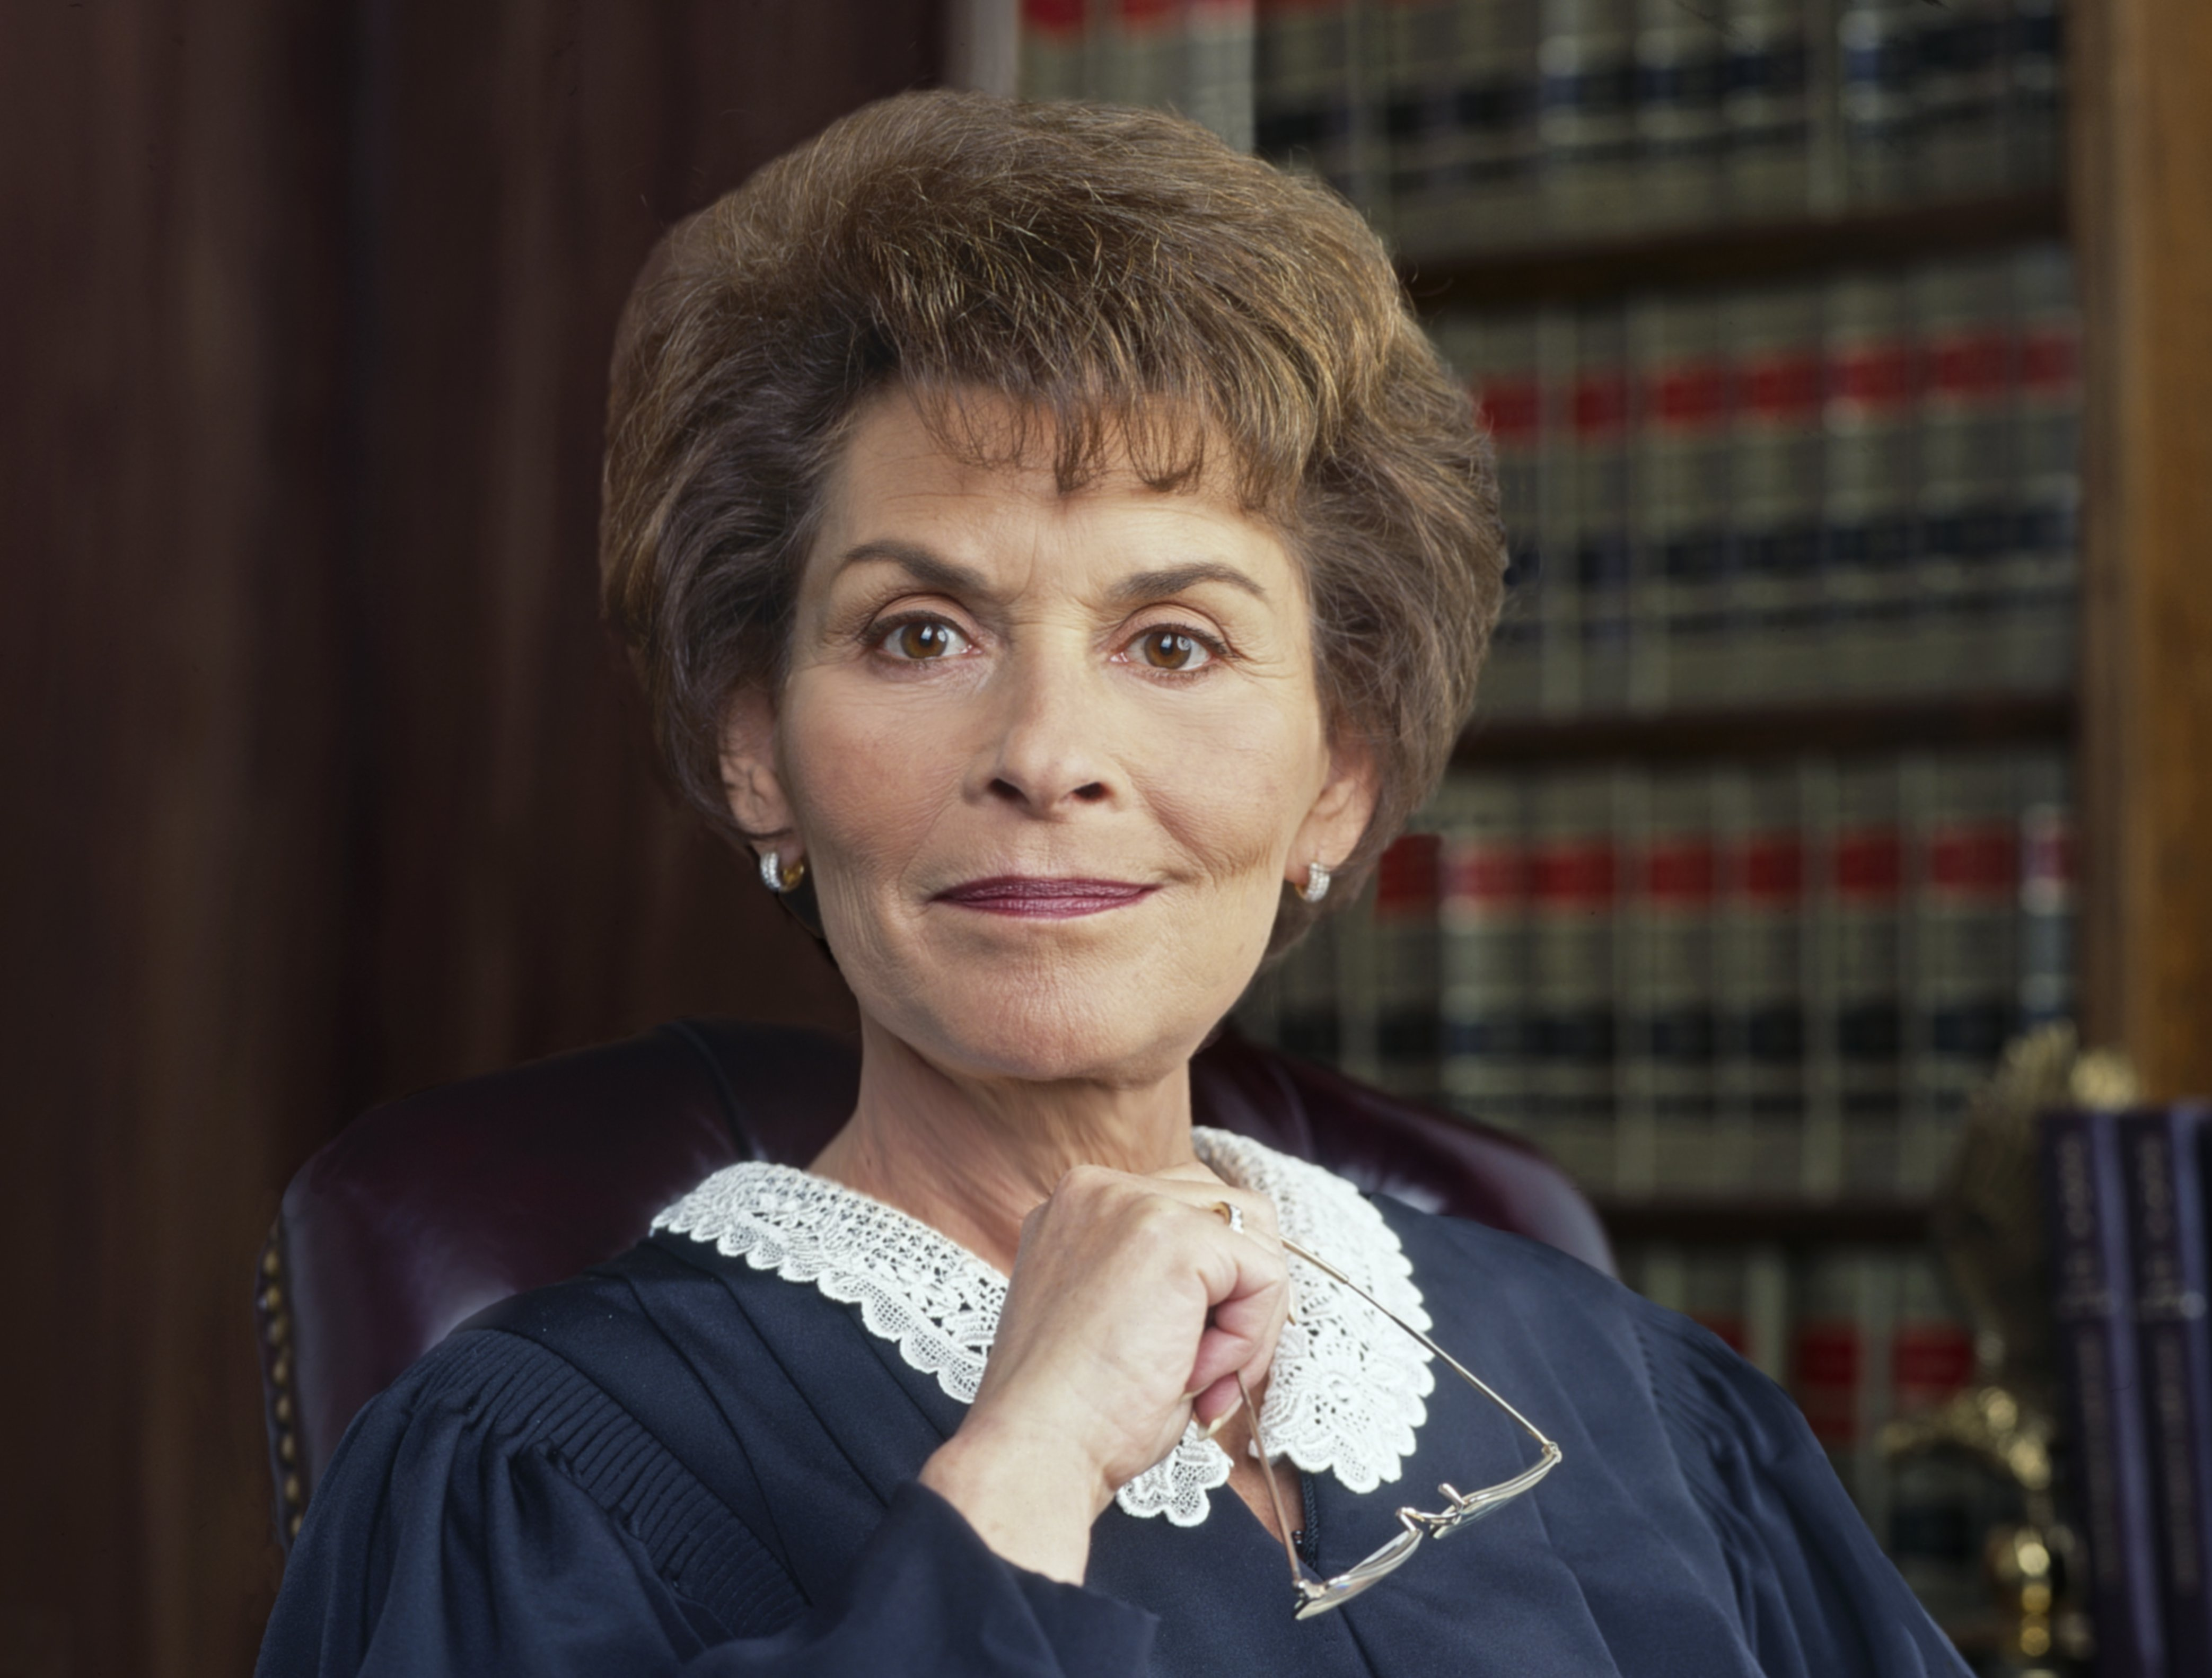 Cultural icon Judge Judy Sheindlin poses for a photo in December 1996 in Los Angeles, California   Photo: Getty Images